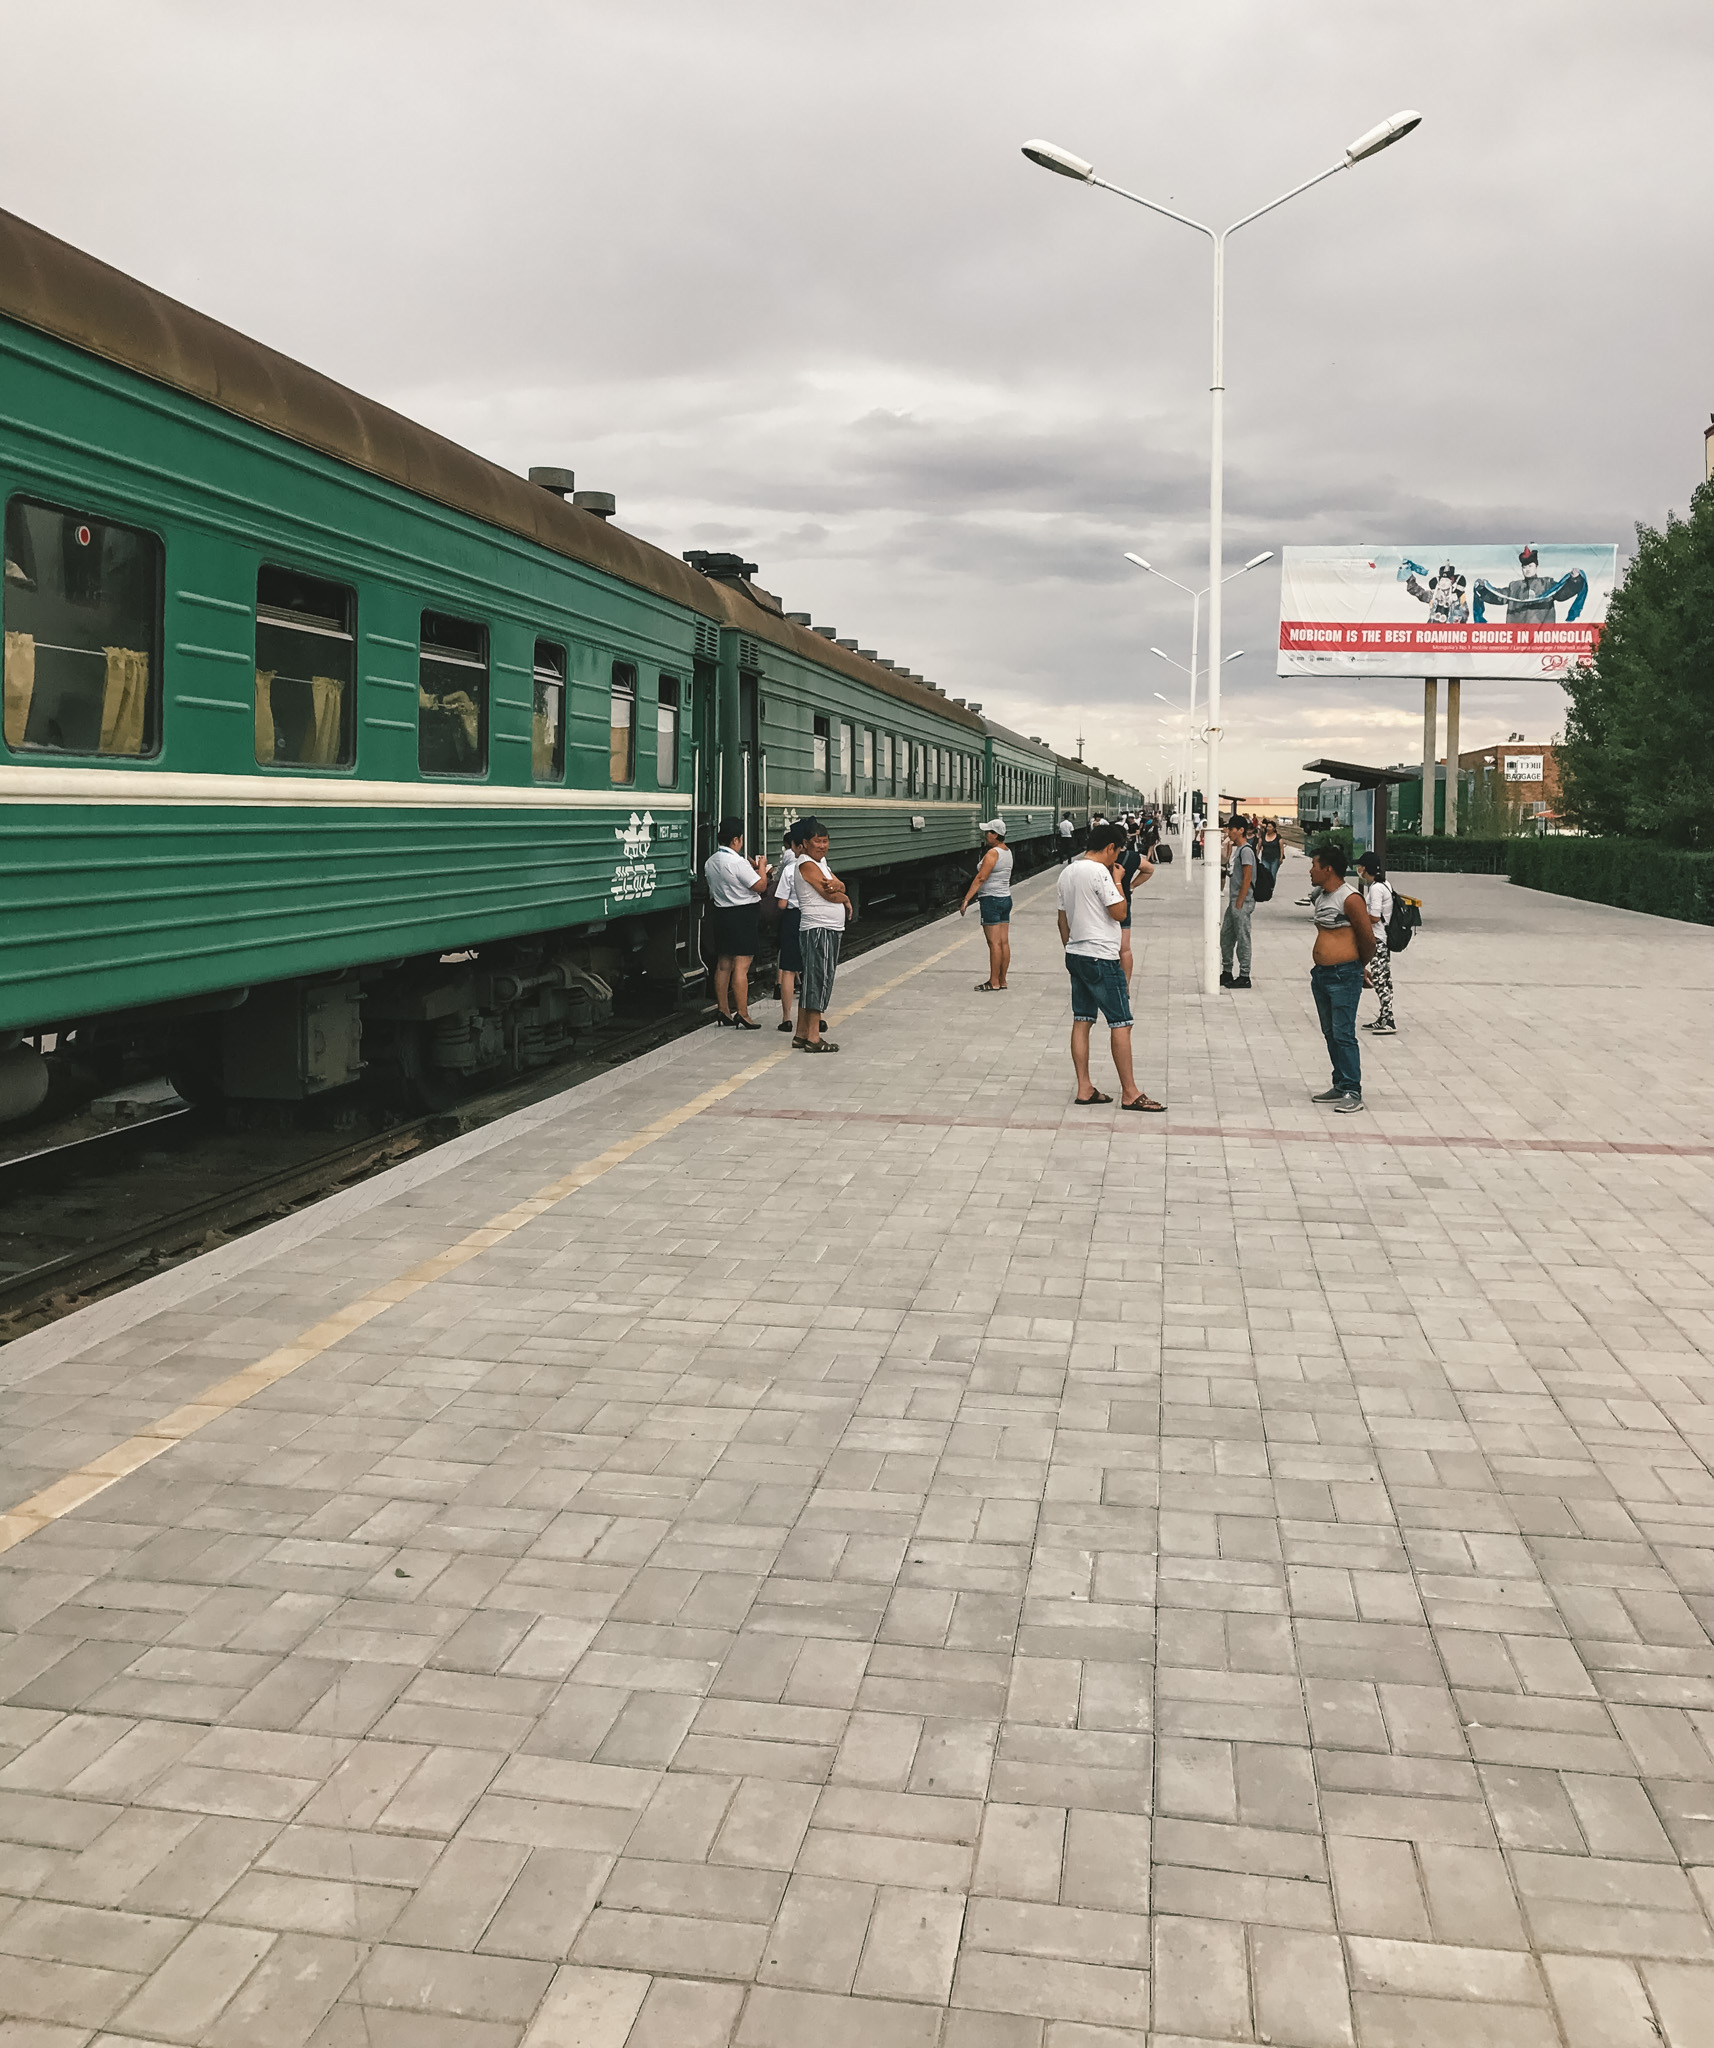 Boarding the train for Ulaanbaatar